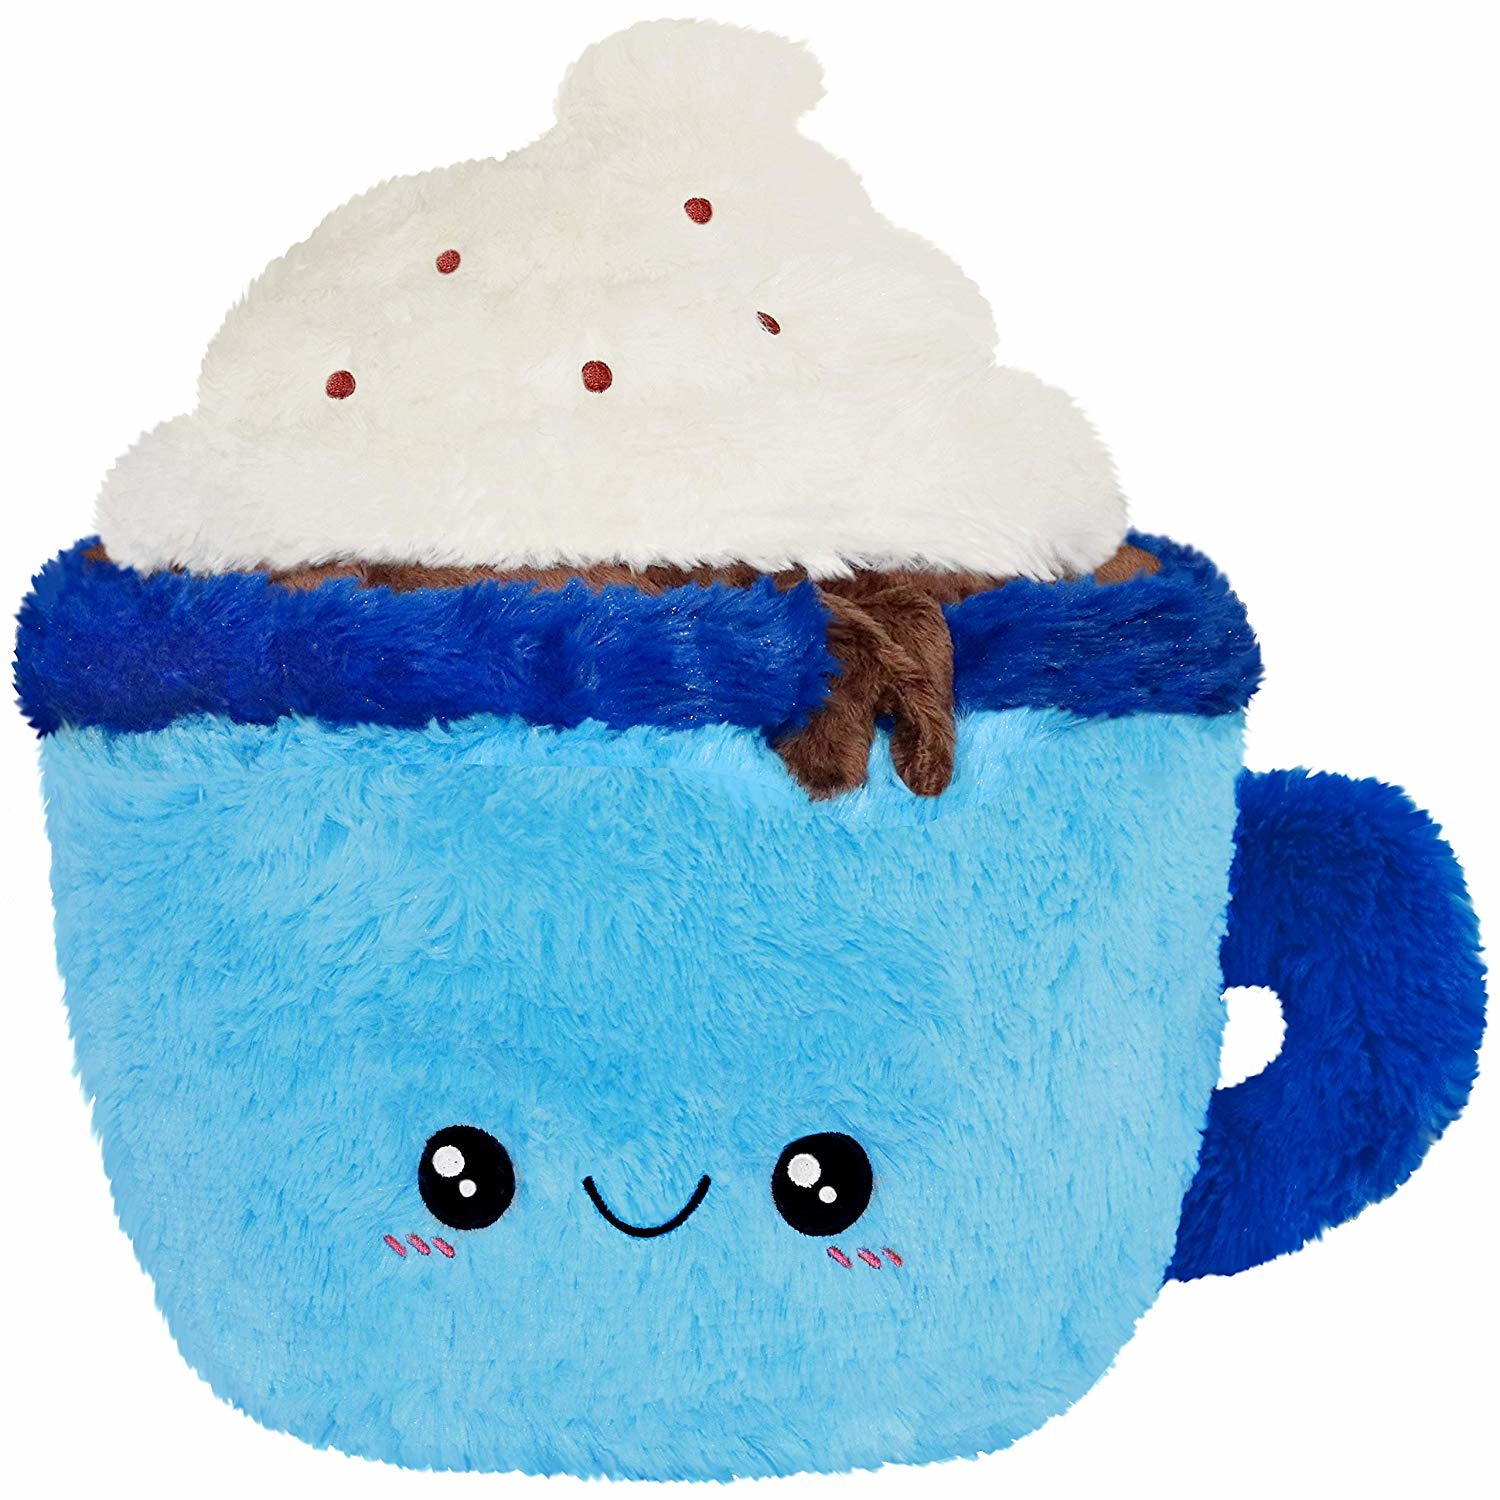 Hot Chocolate Squishable The Toy Store Get 20% off almost everything. hot chocolate squishable